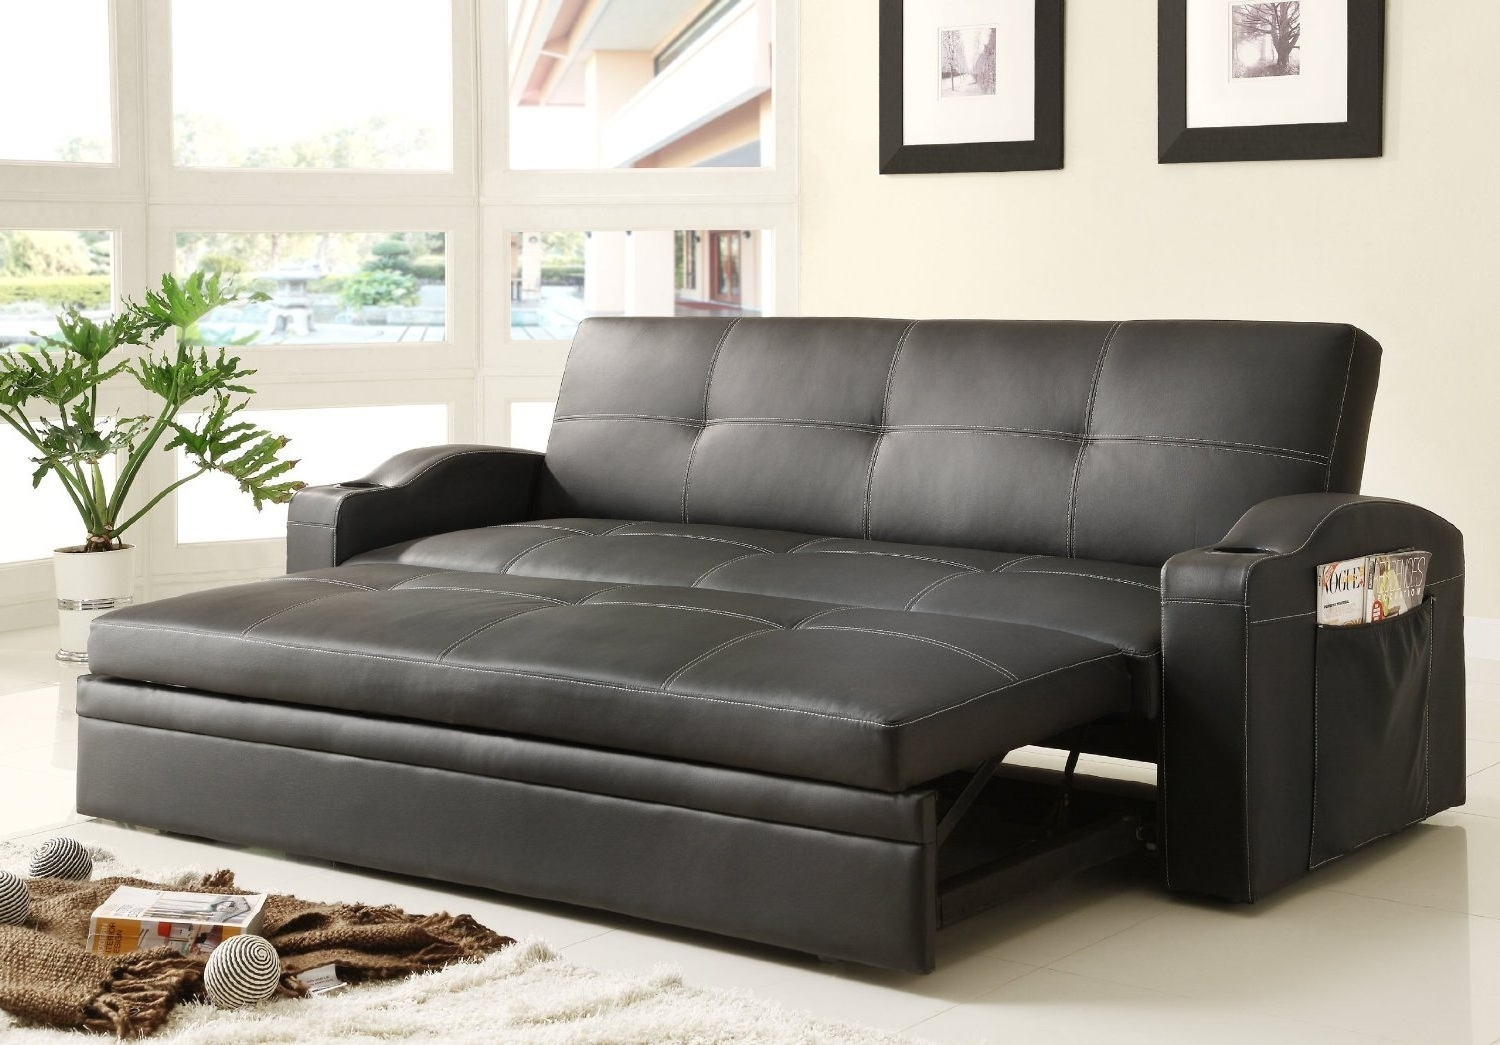 Newest Adjustable Queen Size Sofa Bed Black Color Upholstered In Black Bi Intended For Adjustable Sectional Sofas With Queen Bed (View 14 of 20)